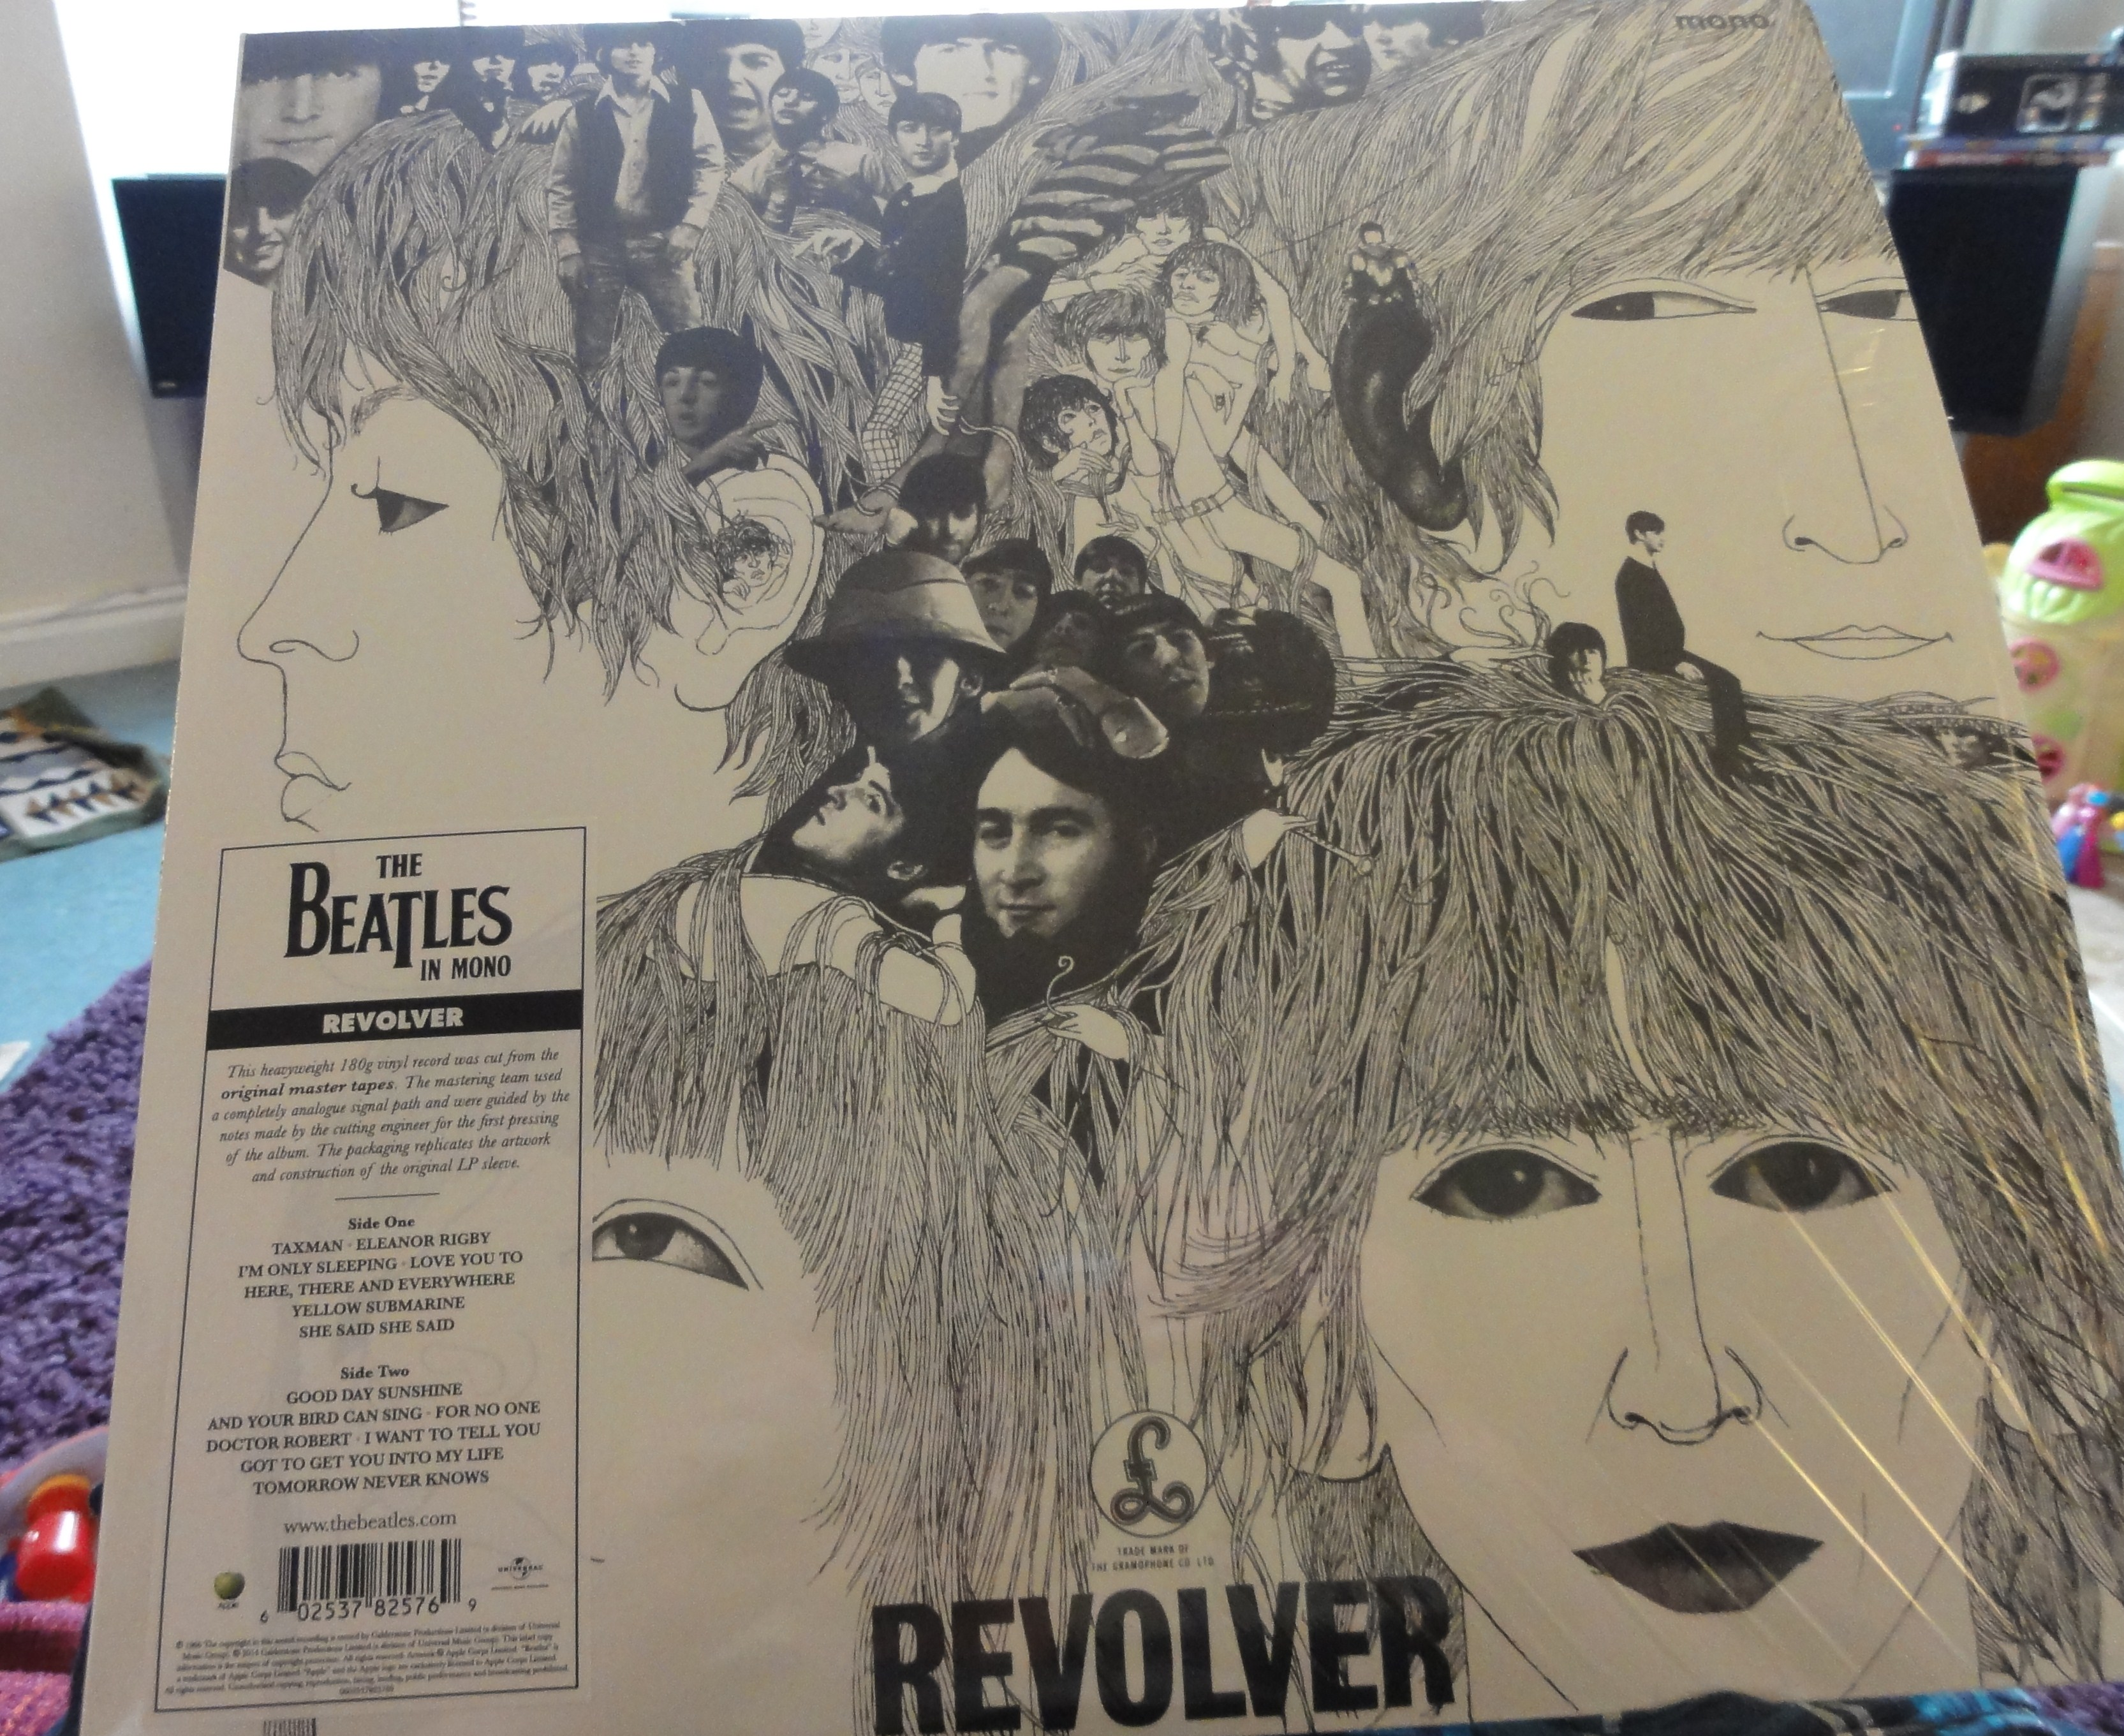 My Own Spin On The Beatles Remastered Revolver In Mono